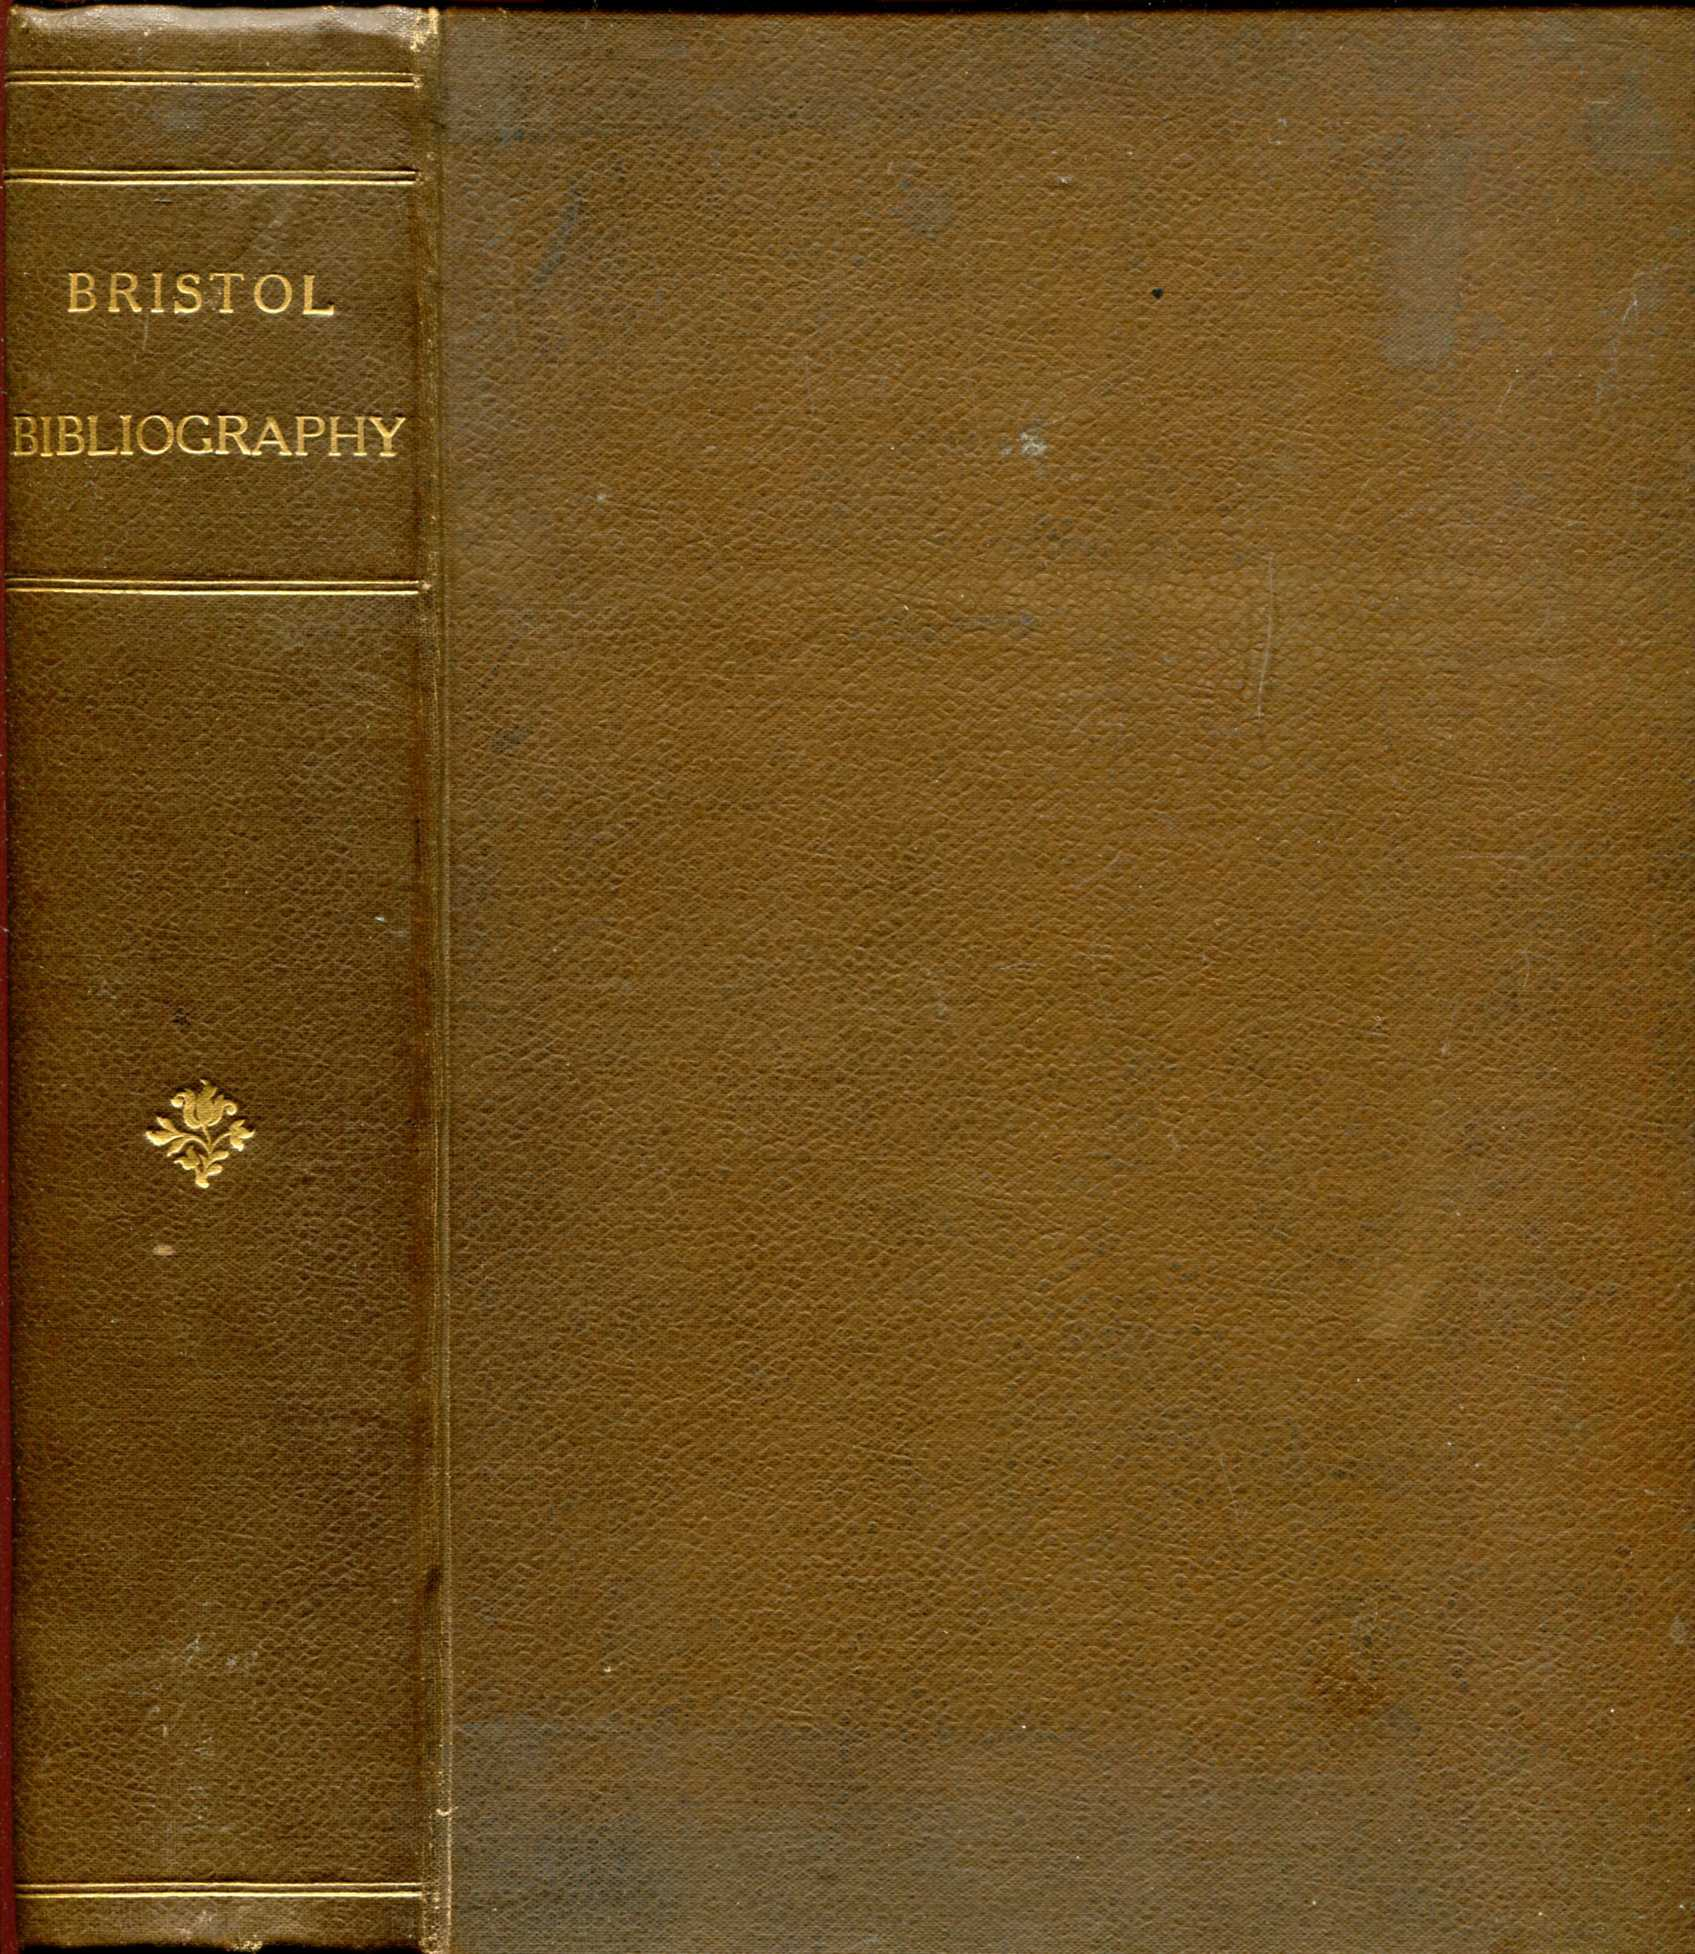 Image for Bristol Bibliography, A Catalogue of the Books, pamphlets, collectanea etc, relating to Bristol, contained in the Central Reference Library